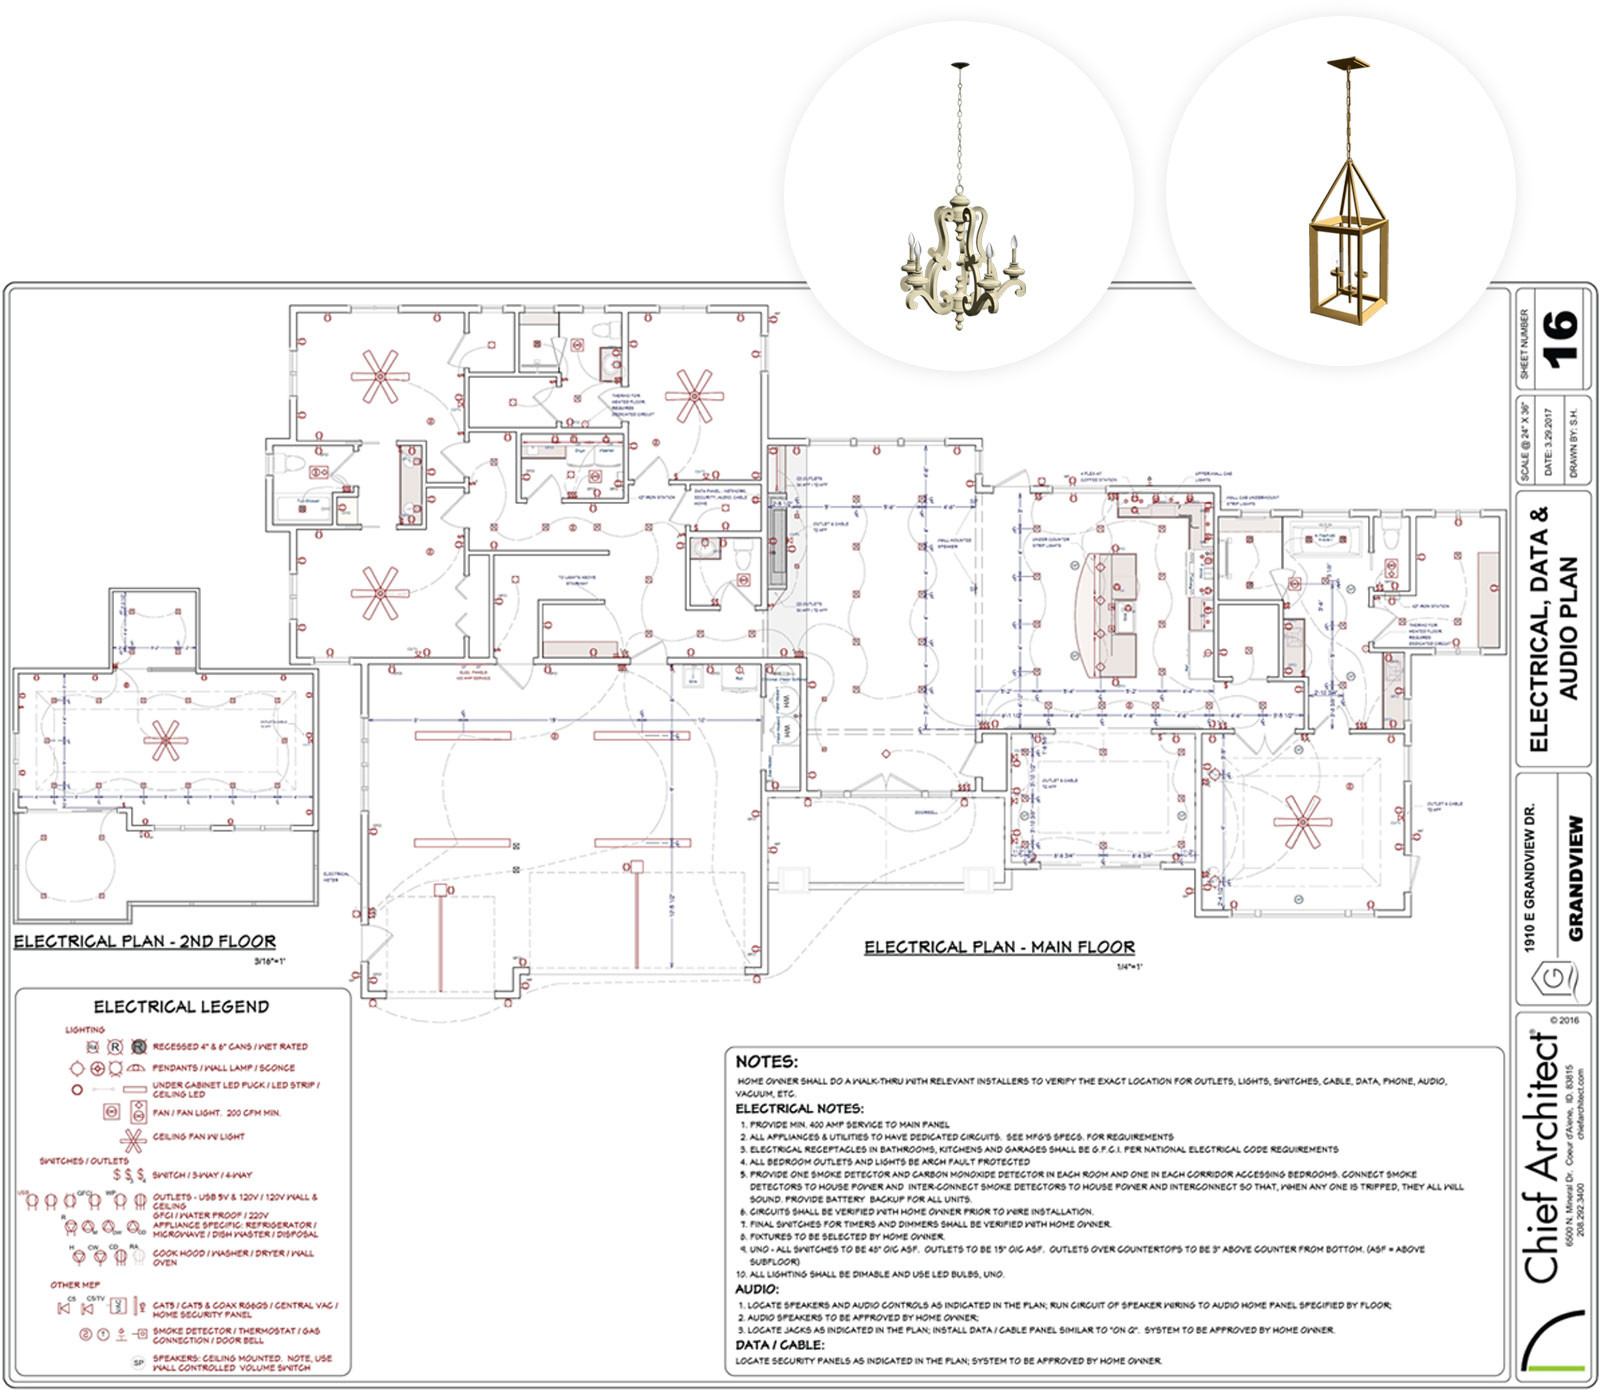 hardwood floor layout software of interior design software chief architect pertaining to sample electrical lighting planset